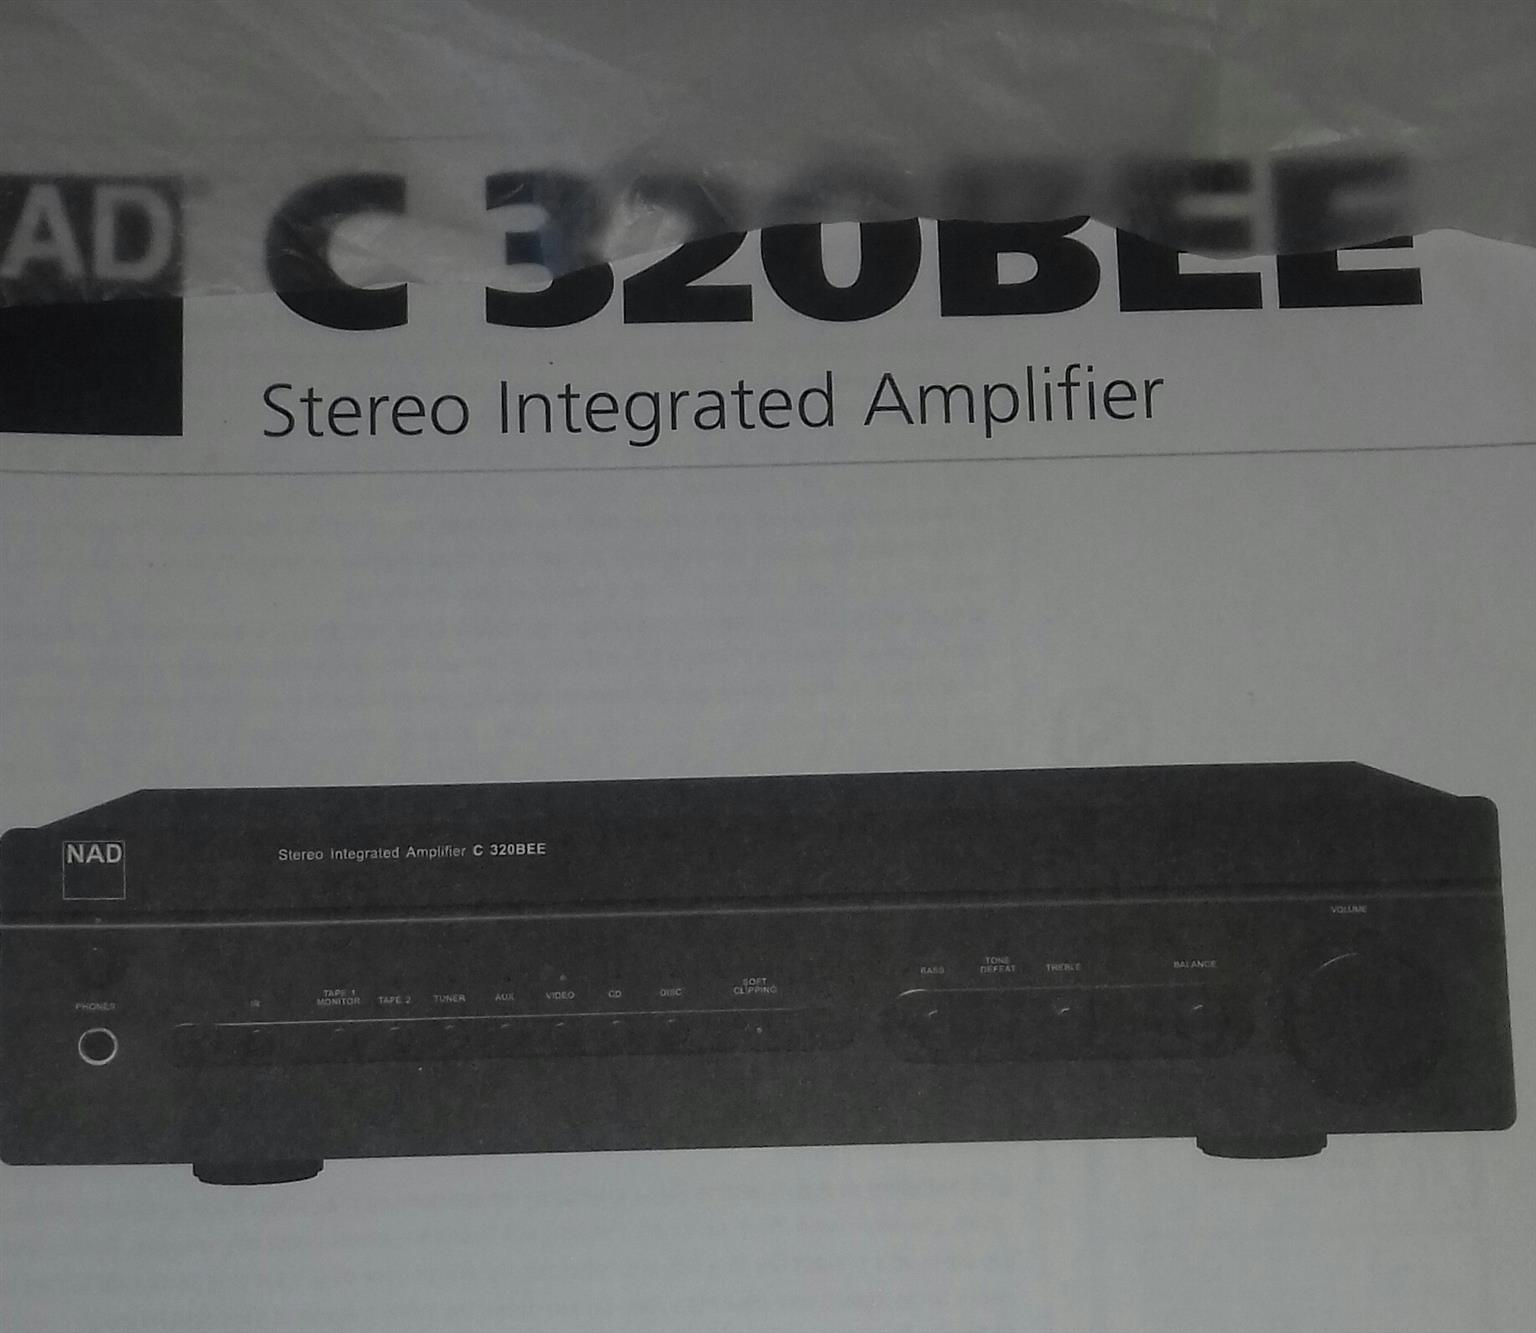 Looking for a NAD amplifier